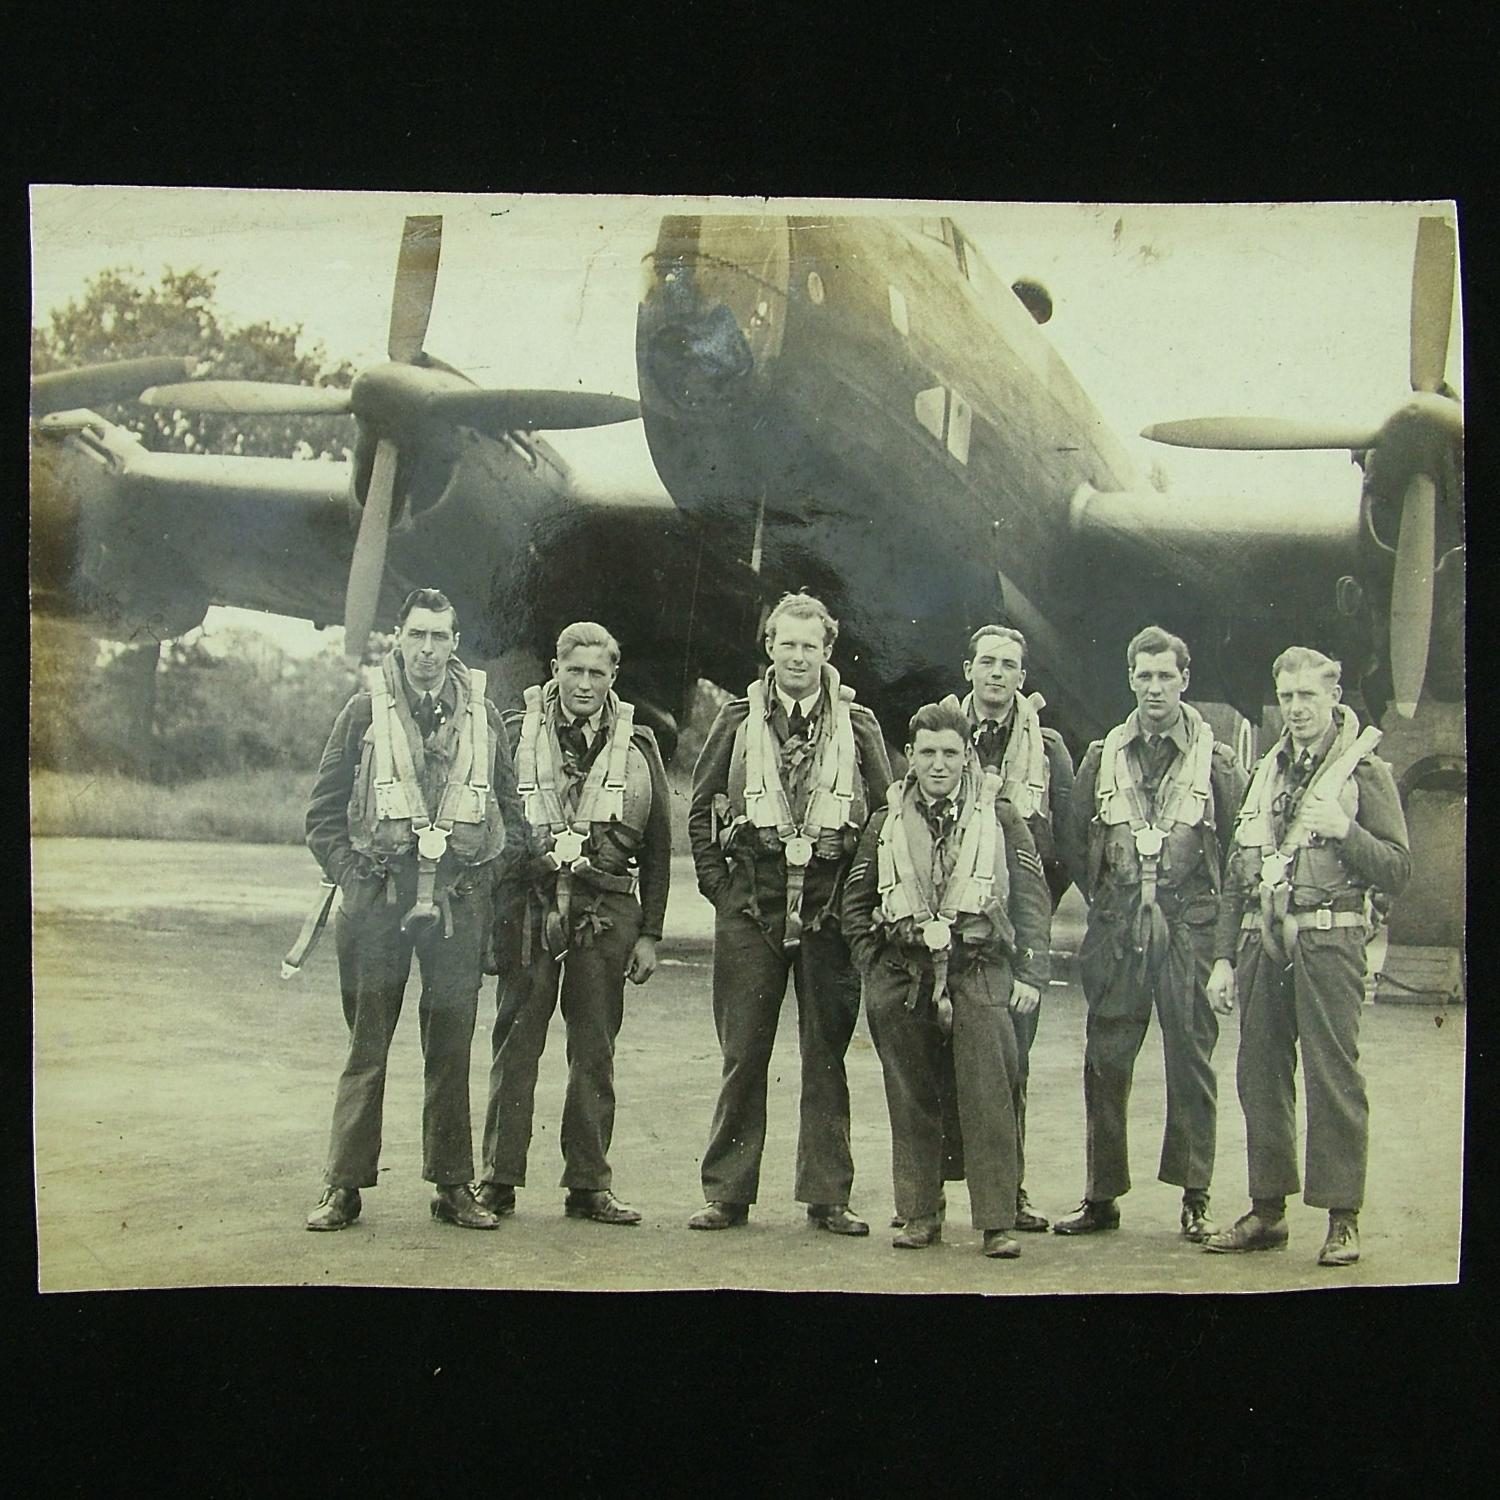 RAF aircrew group photograph